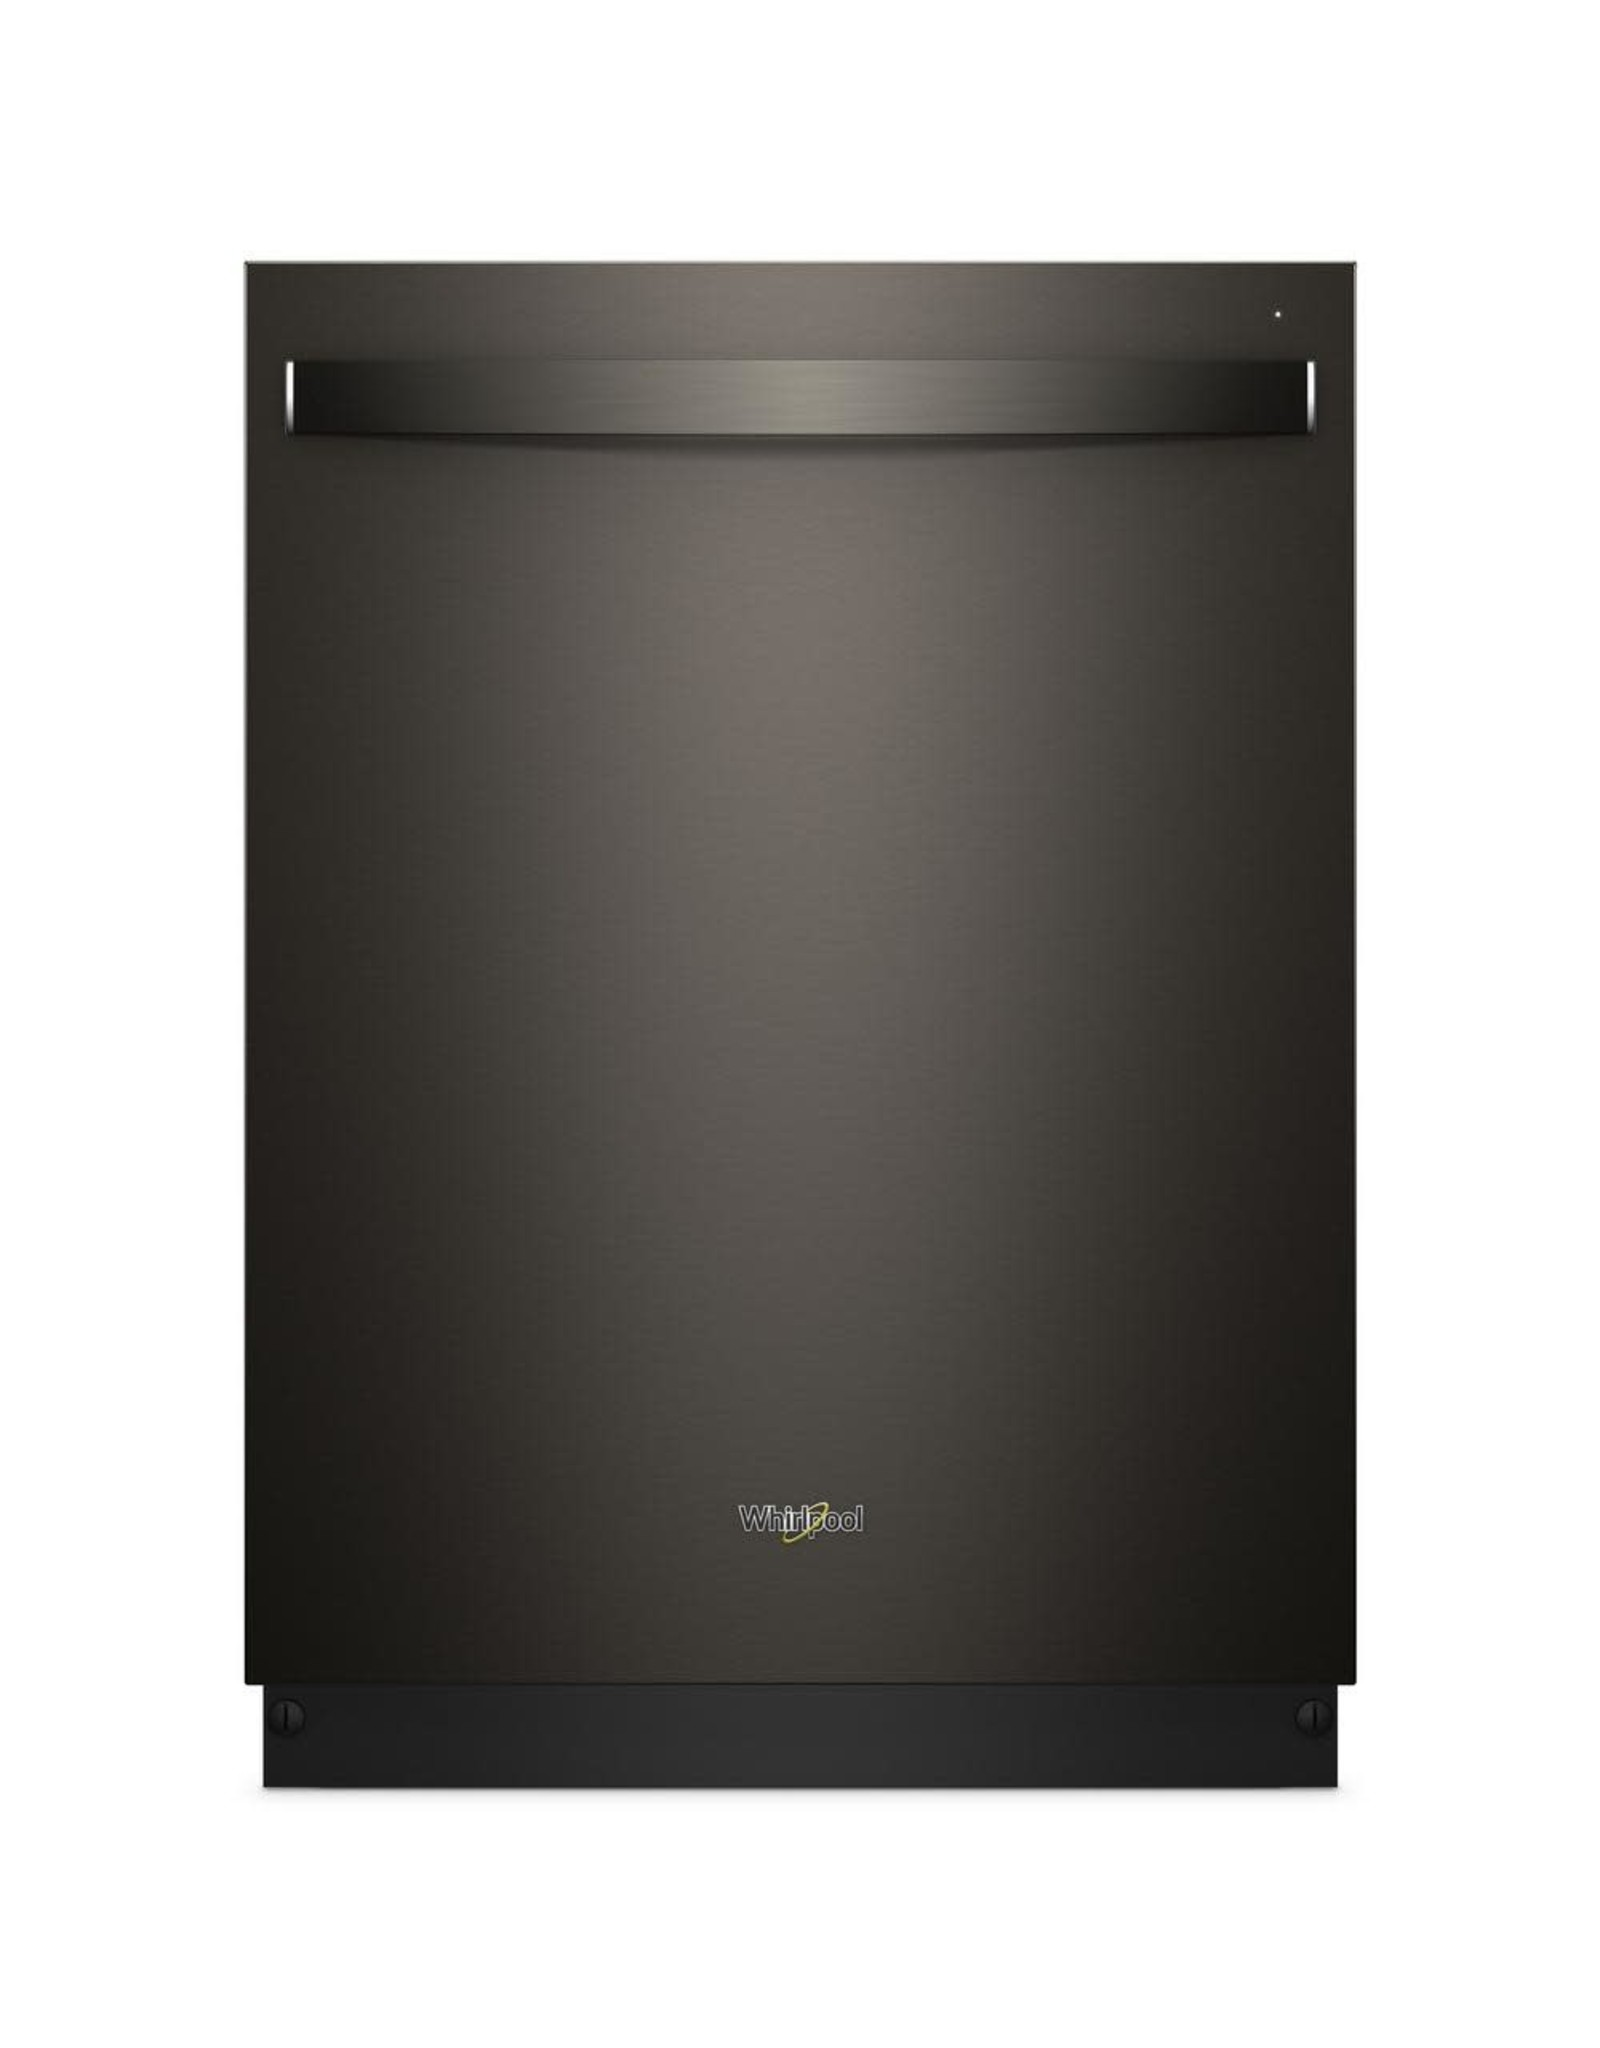 WHIRLPOOL WDT750SAHV  Top Control Built-In Tall Tub Dishwasher in Fingerprint Resistant Black Stainless with Stainless Steel Tub, 47 dBA